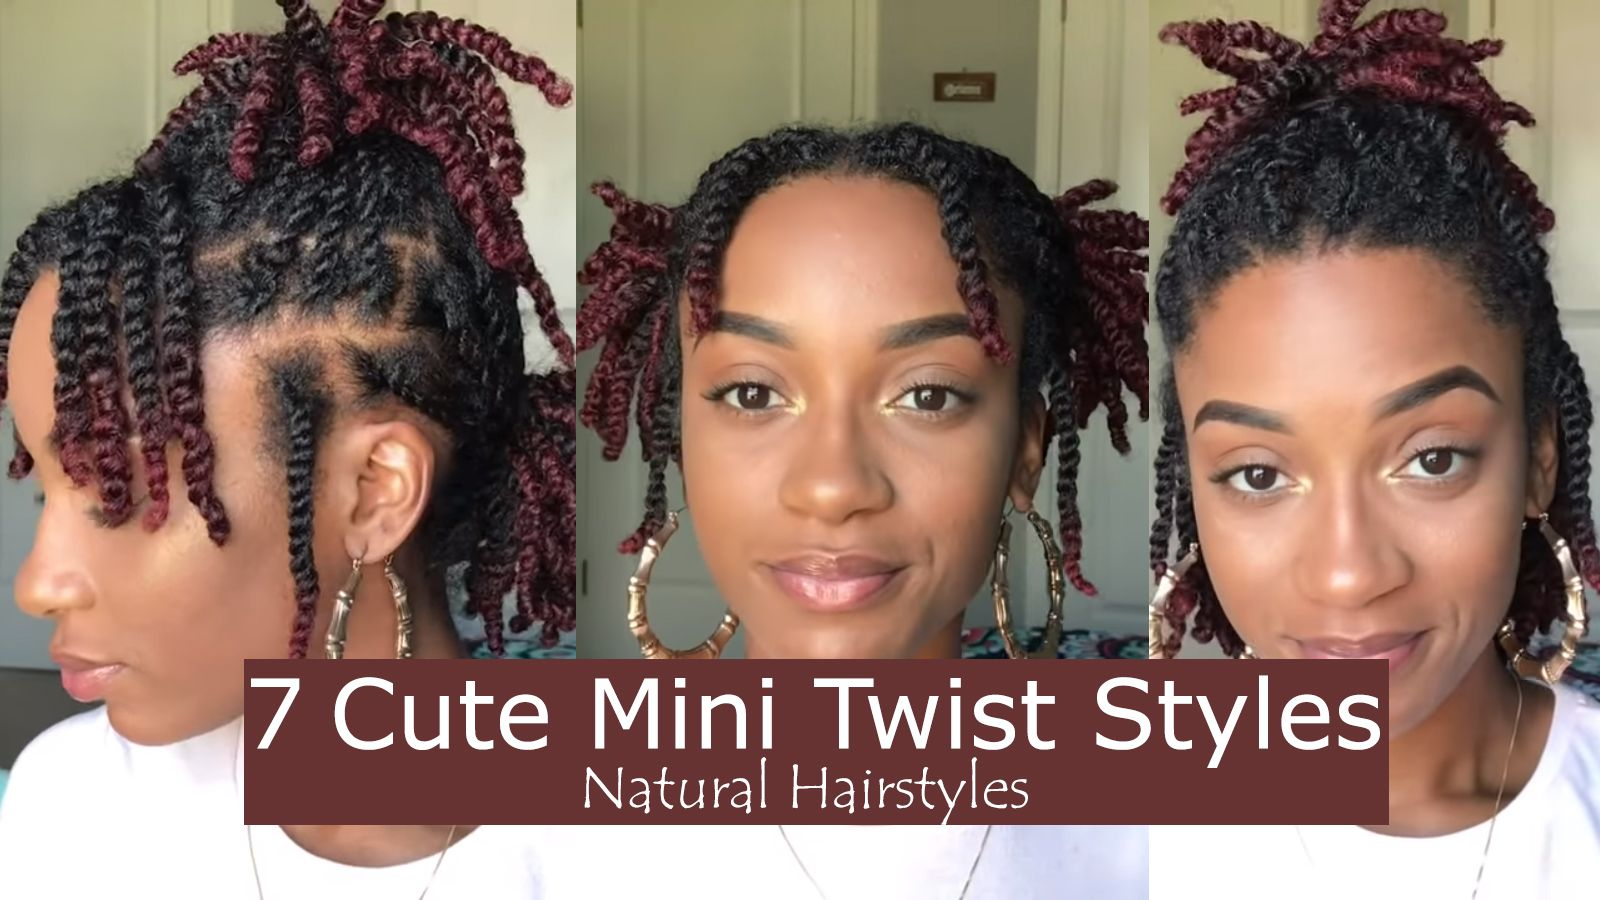 7 Quick And Easy Styles You Can Do With Your Mini Twists Natural Hair Twists Natural Hair Styles Mini Twists Natural Hair